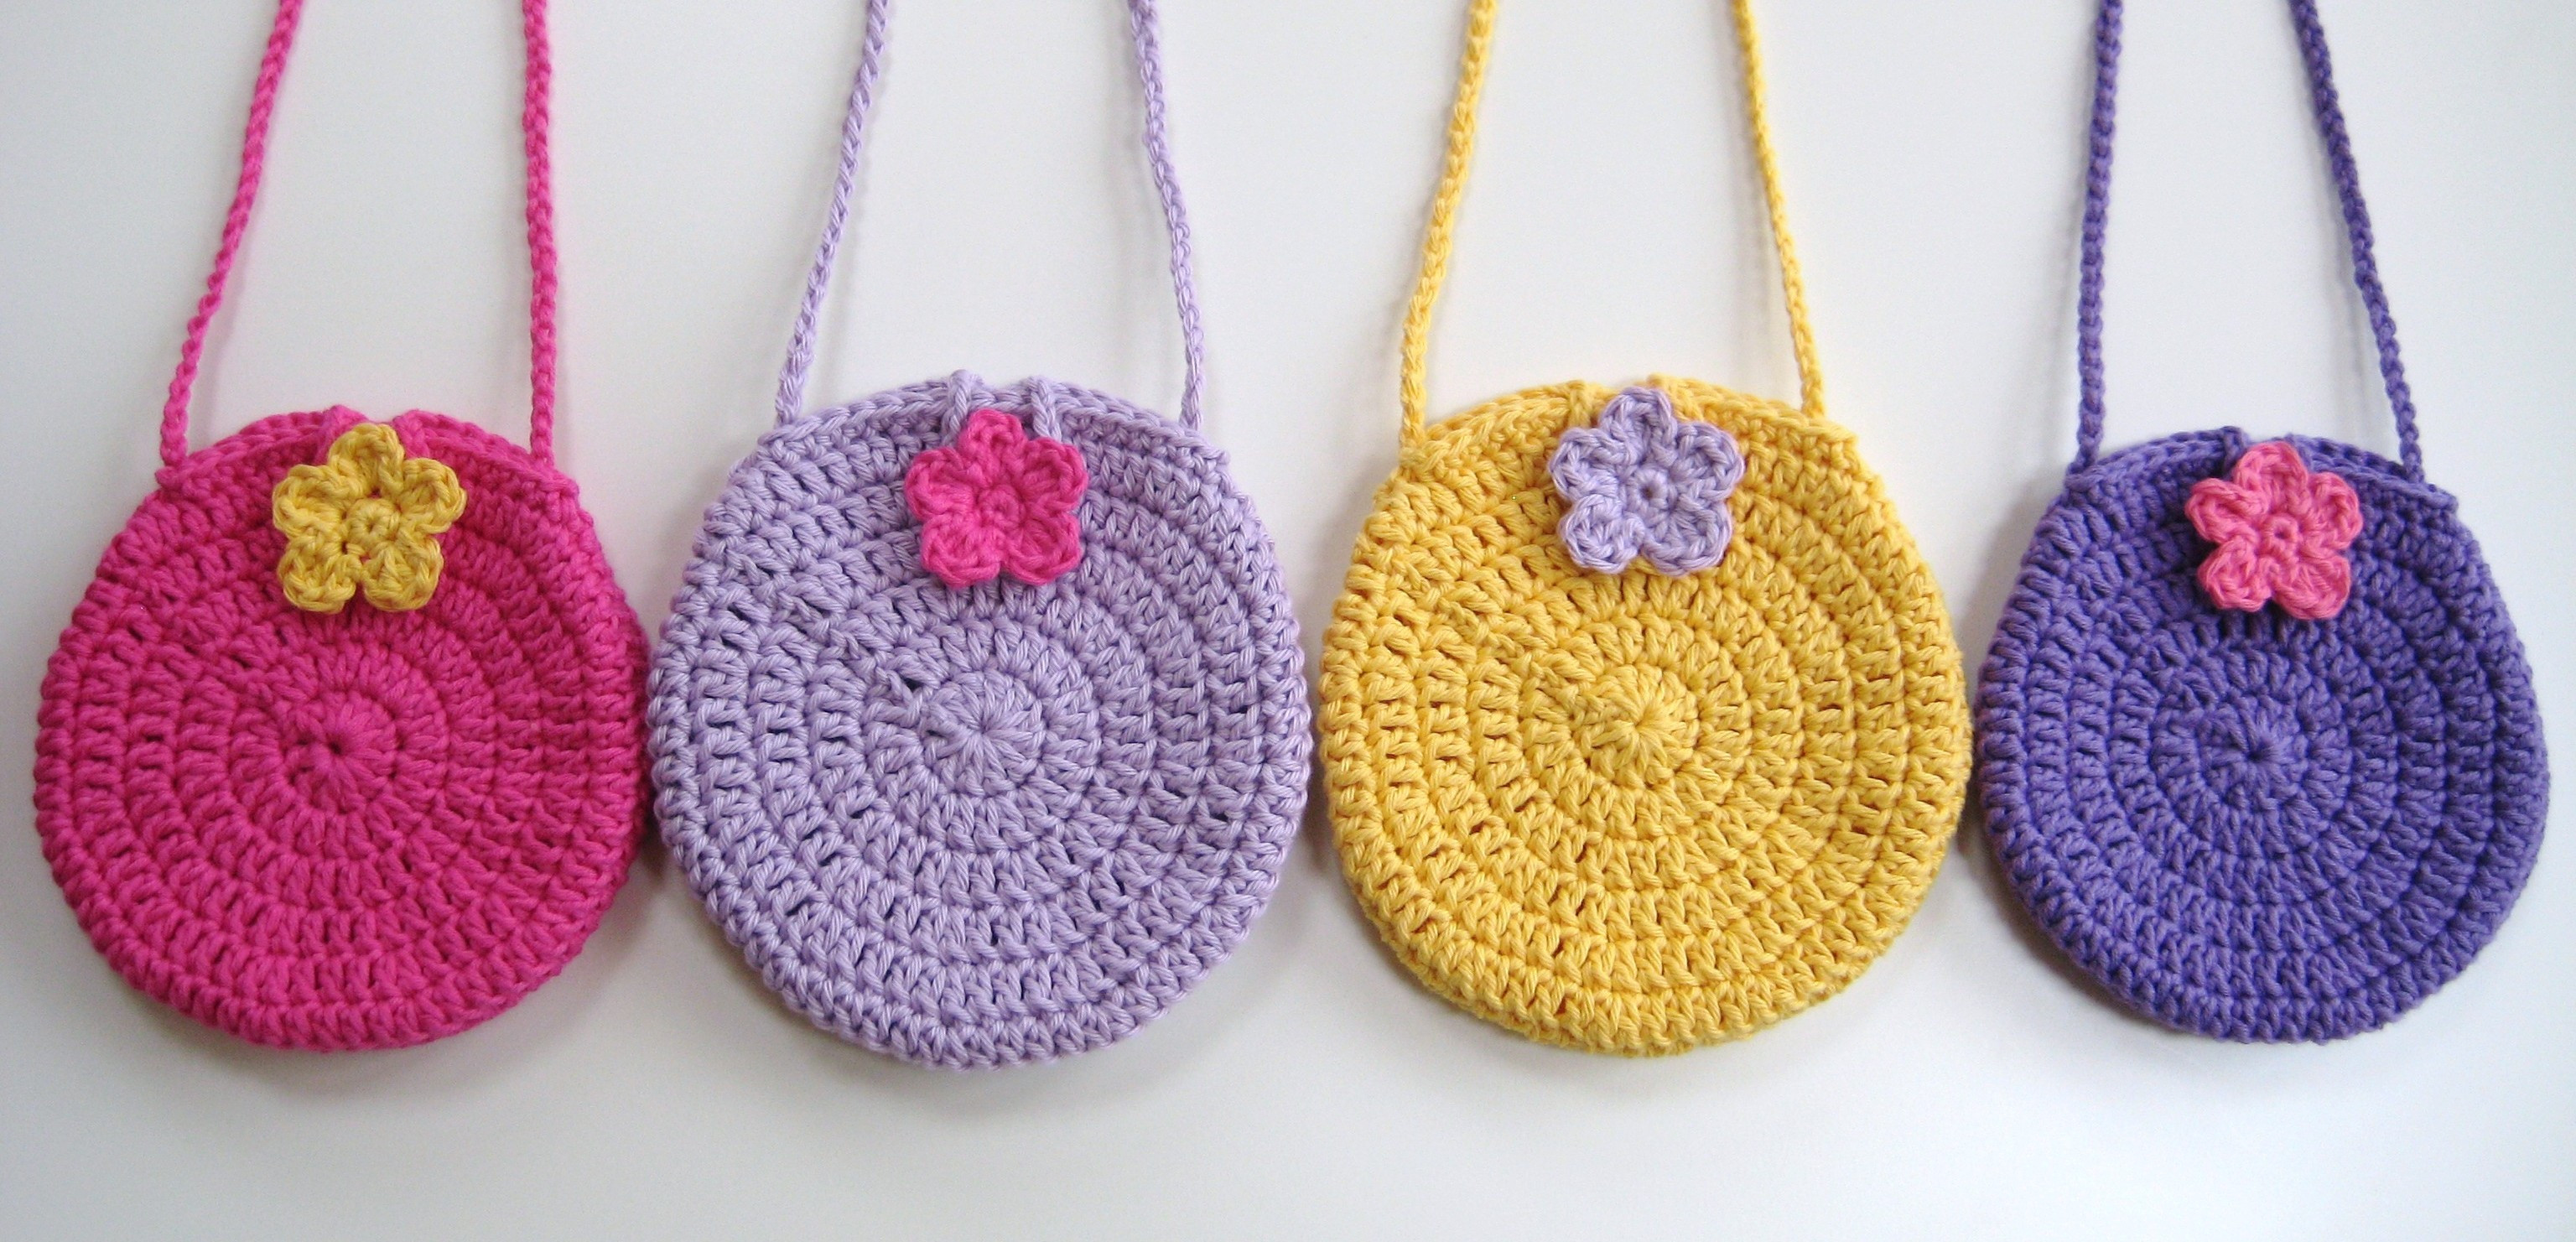 Crochet Pouch Lovely Round Bag Crochet Pattern No3 Instant Download Pdf Of Awesome 48 Pics Crochet Pouch